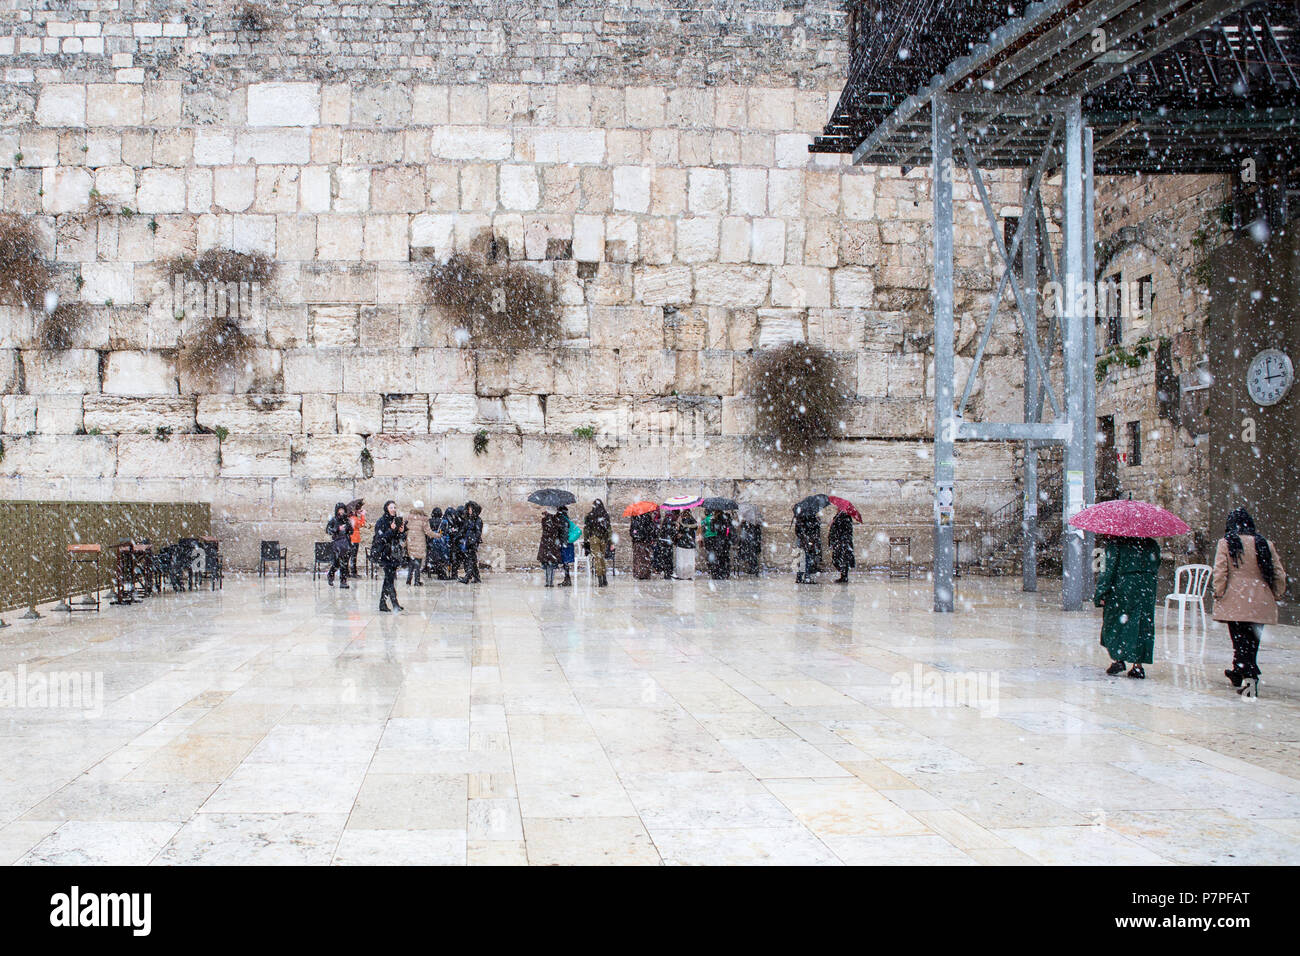 The Western Wall in Jerusalem, empty of people during snow - Stock Image